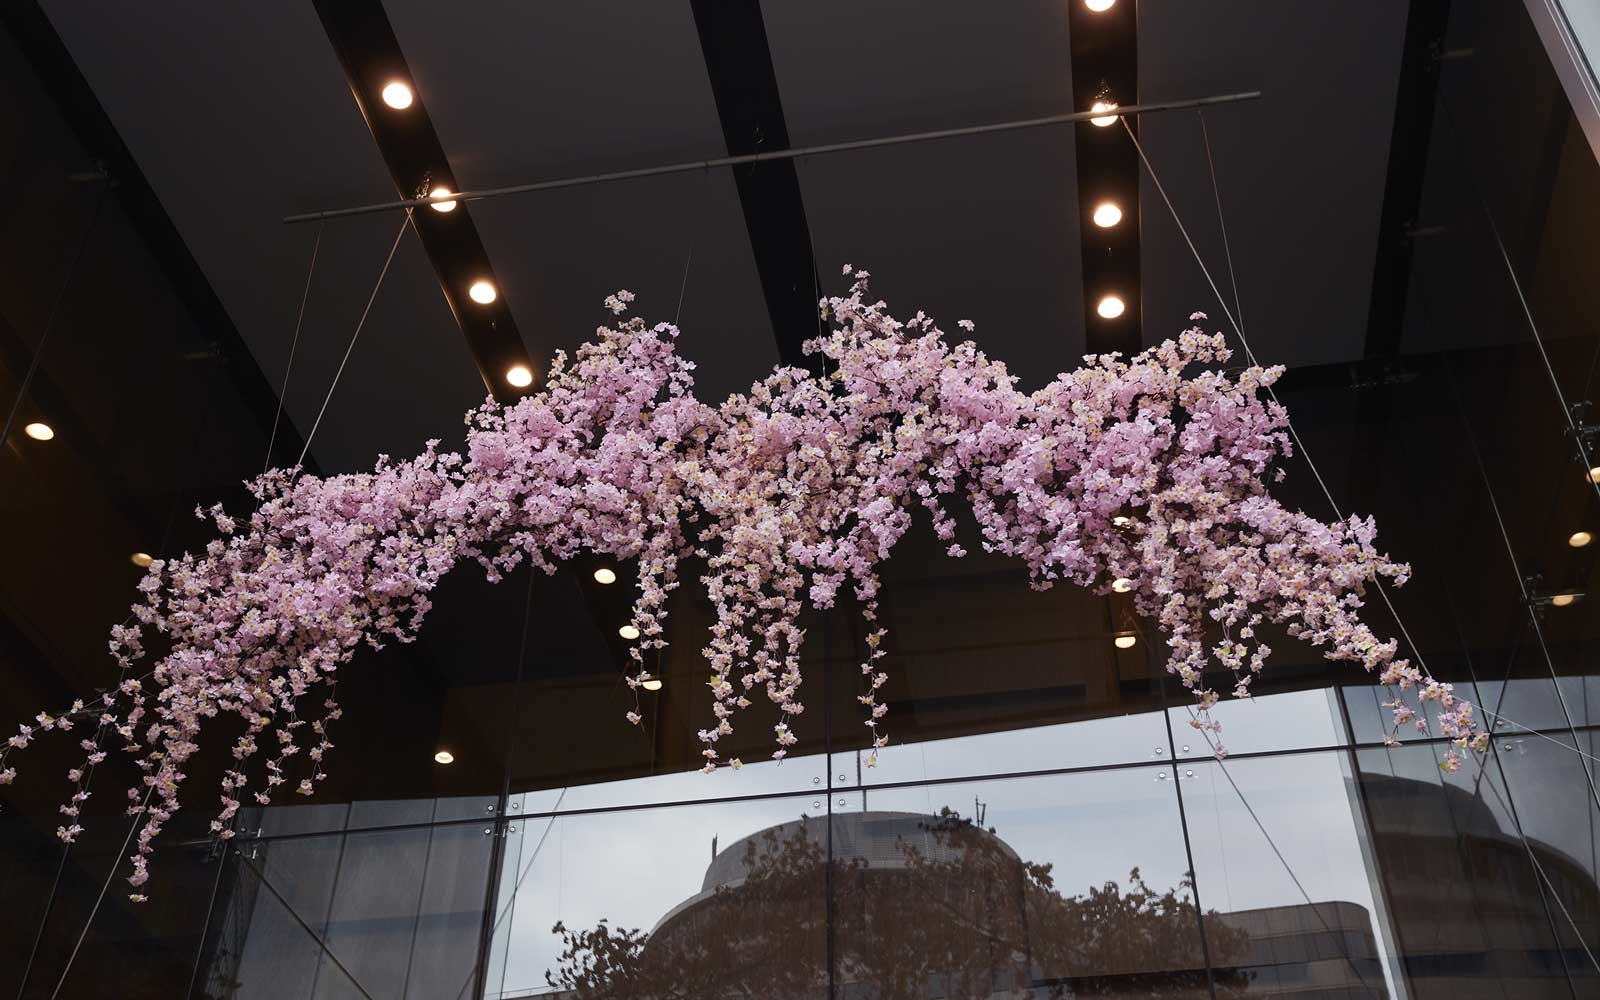 Cherry blossom floral arrangement on the streets of Tokyo